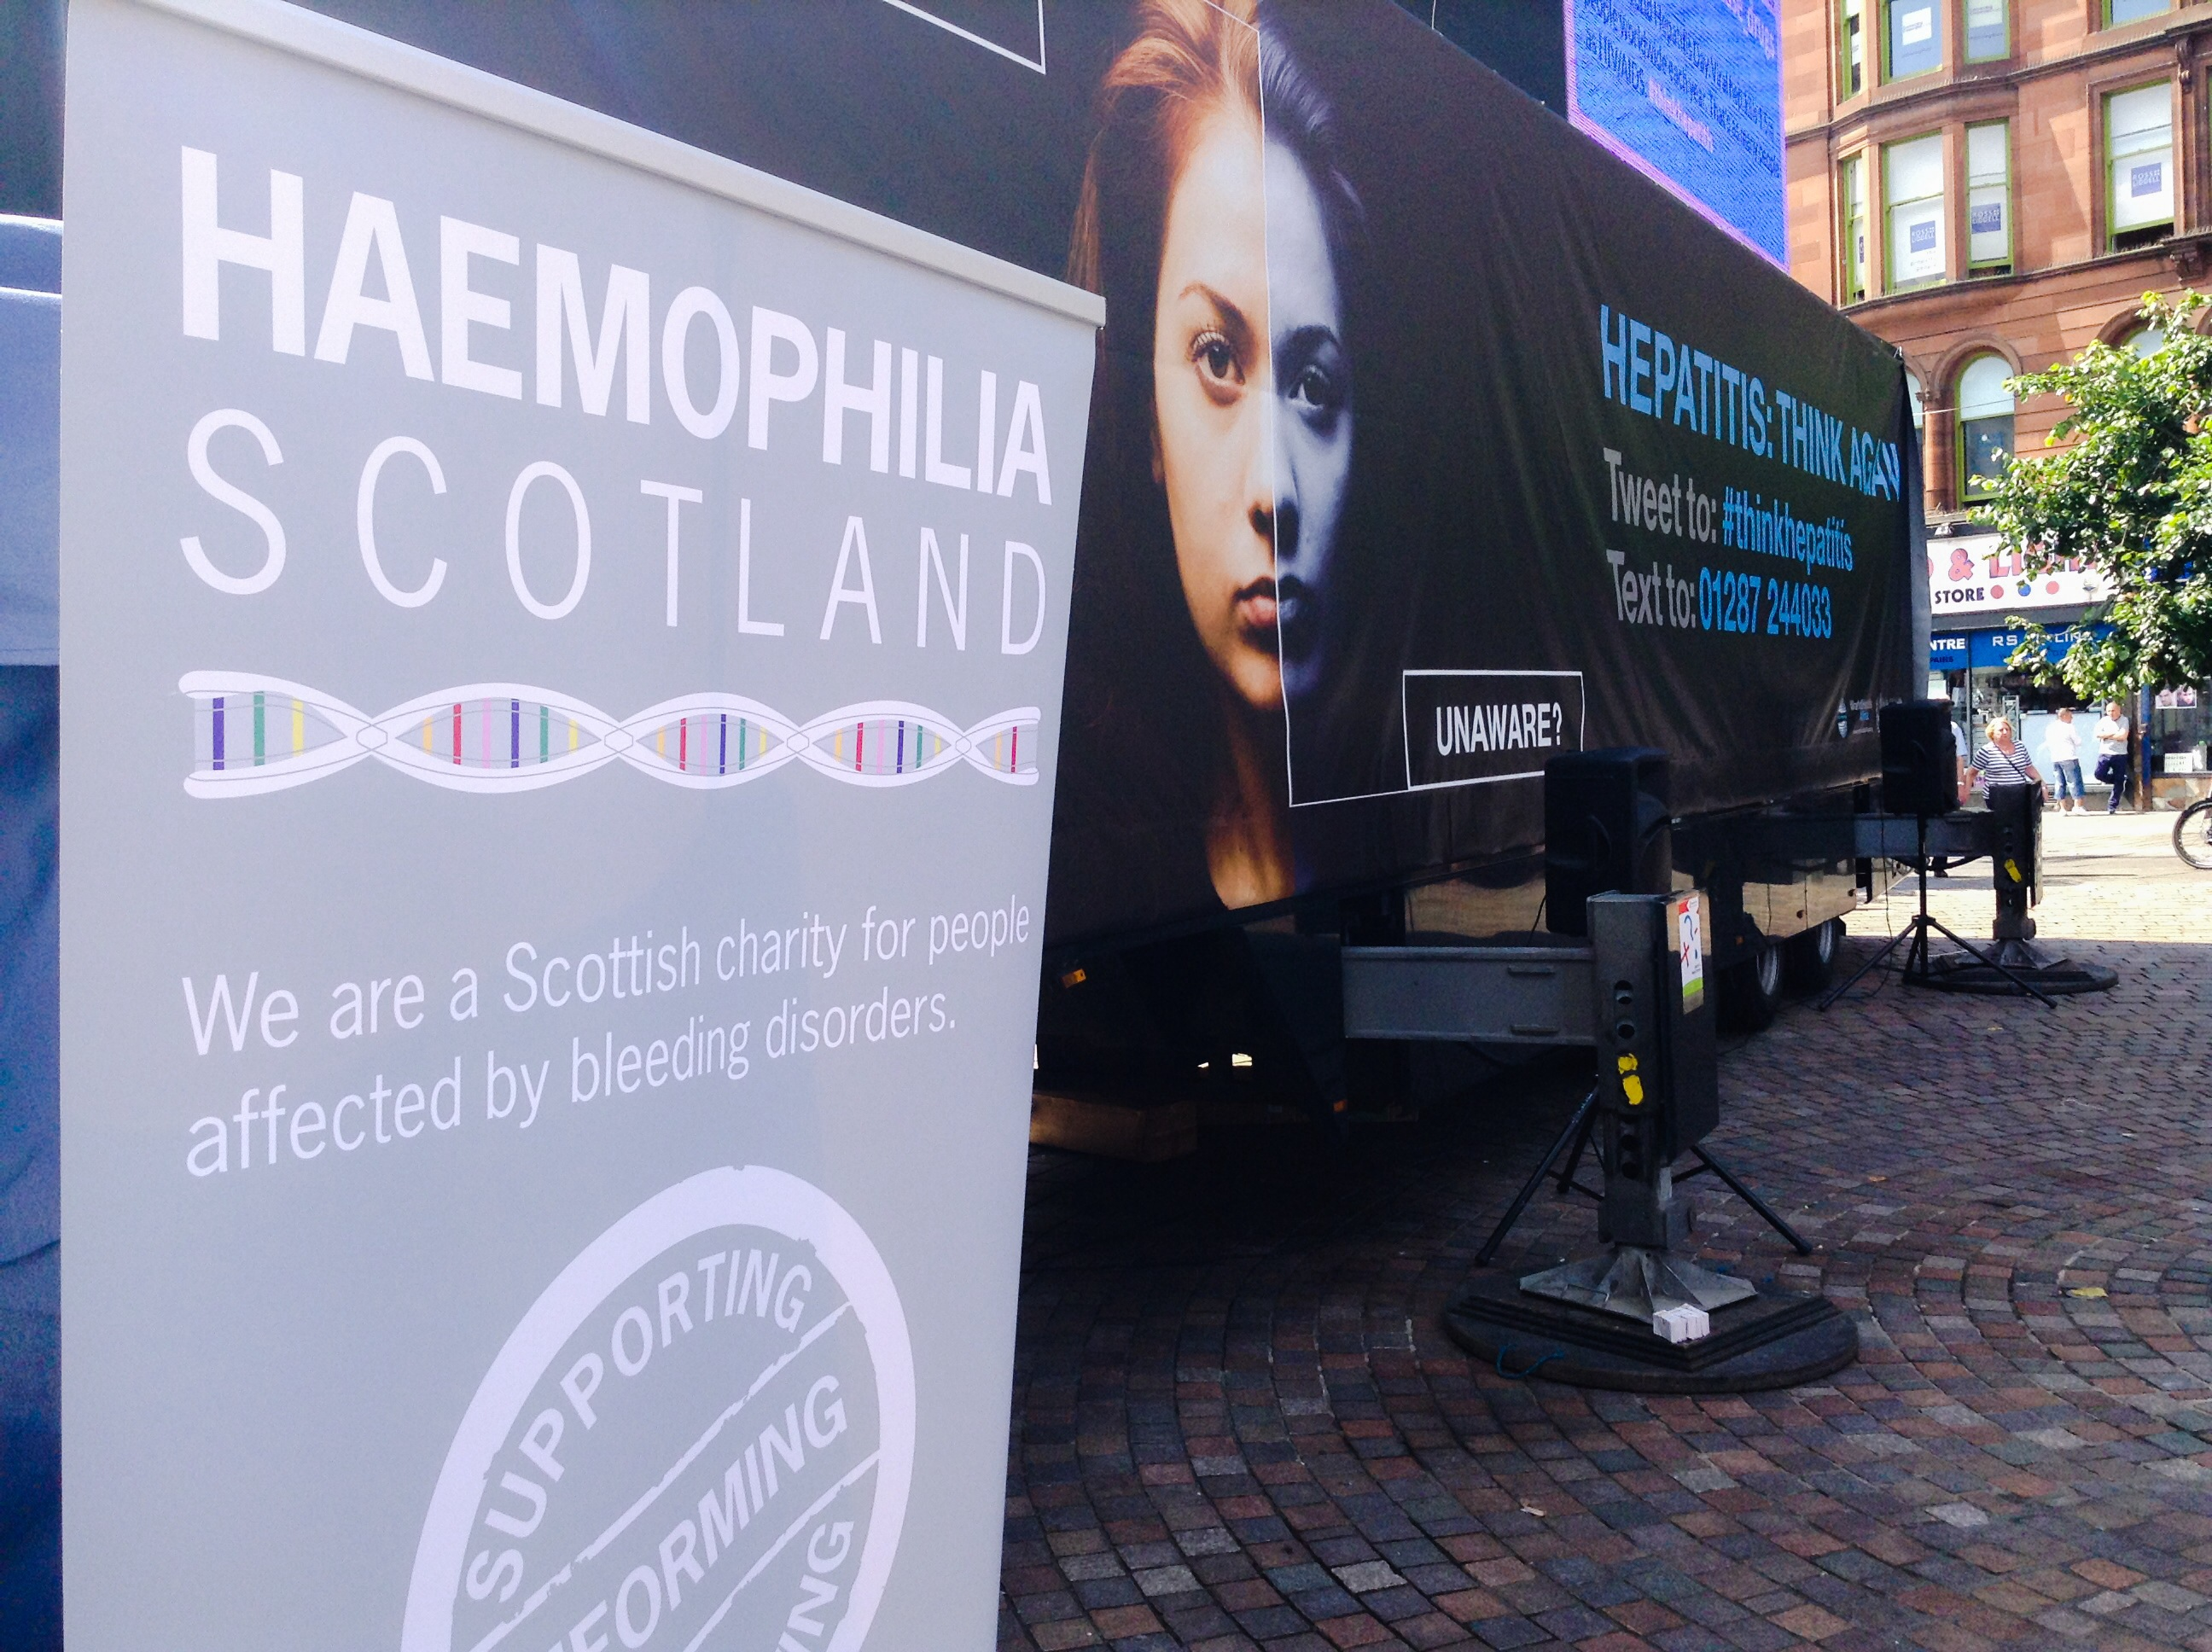 We are proud to play our small part in the World Haemophilia Day event in  Glasgow.